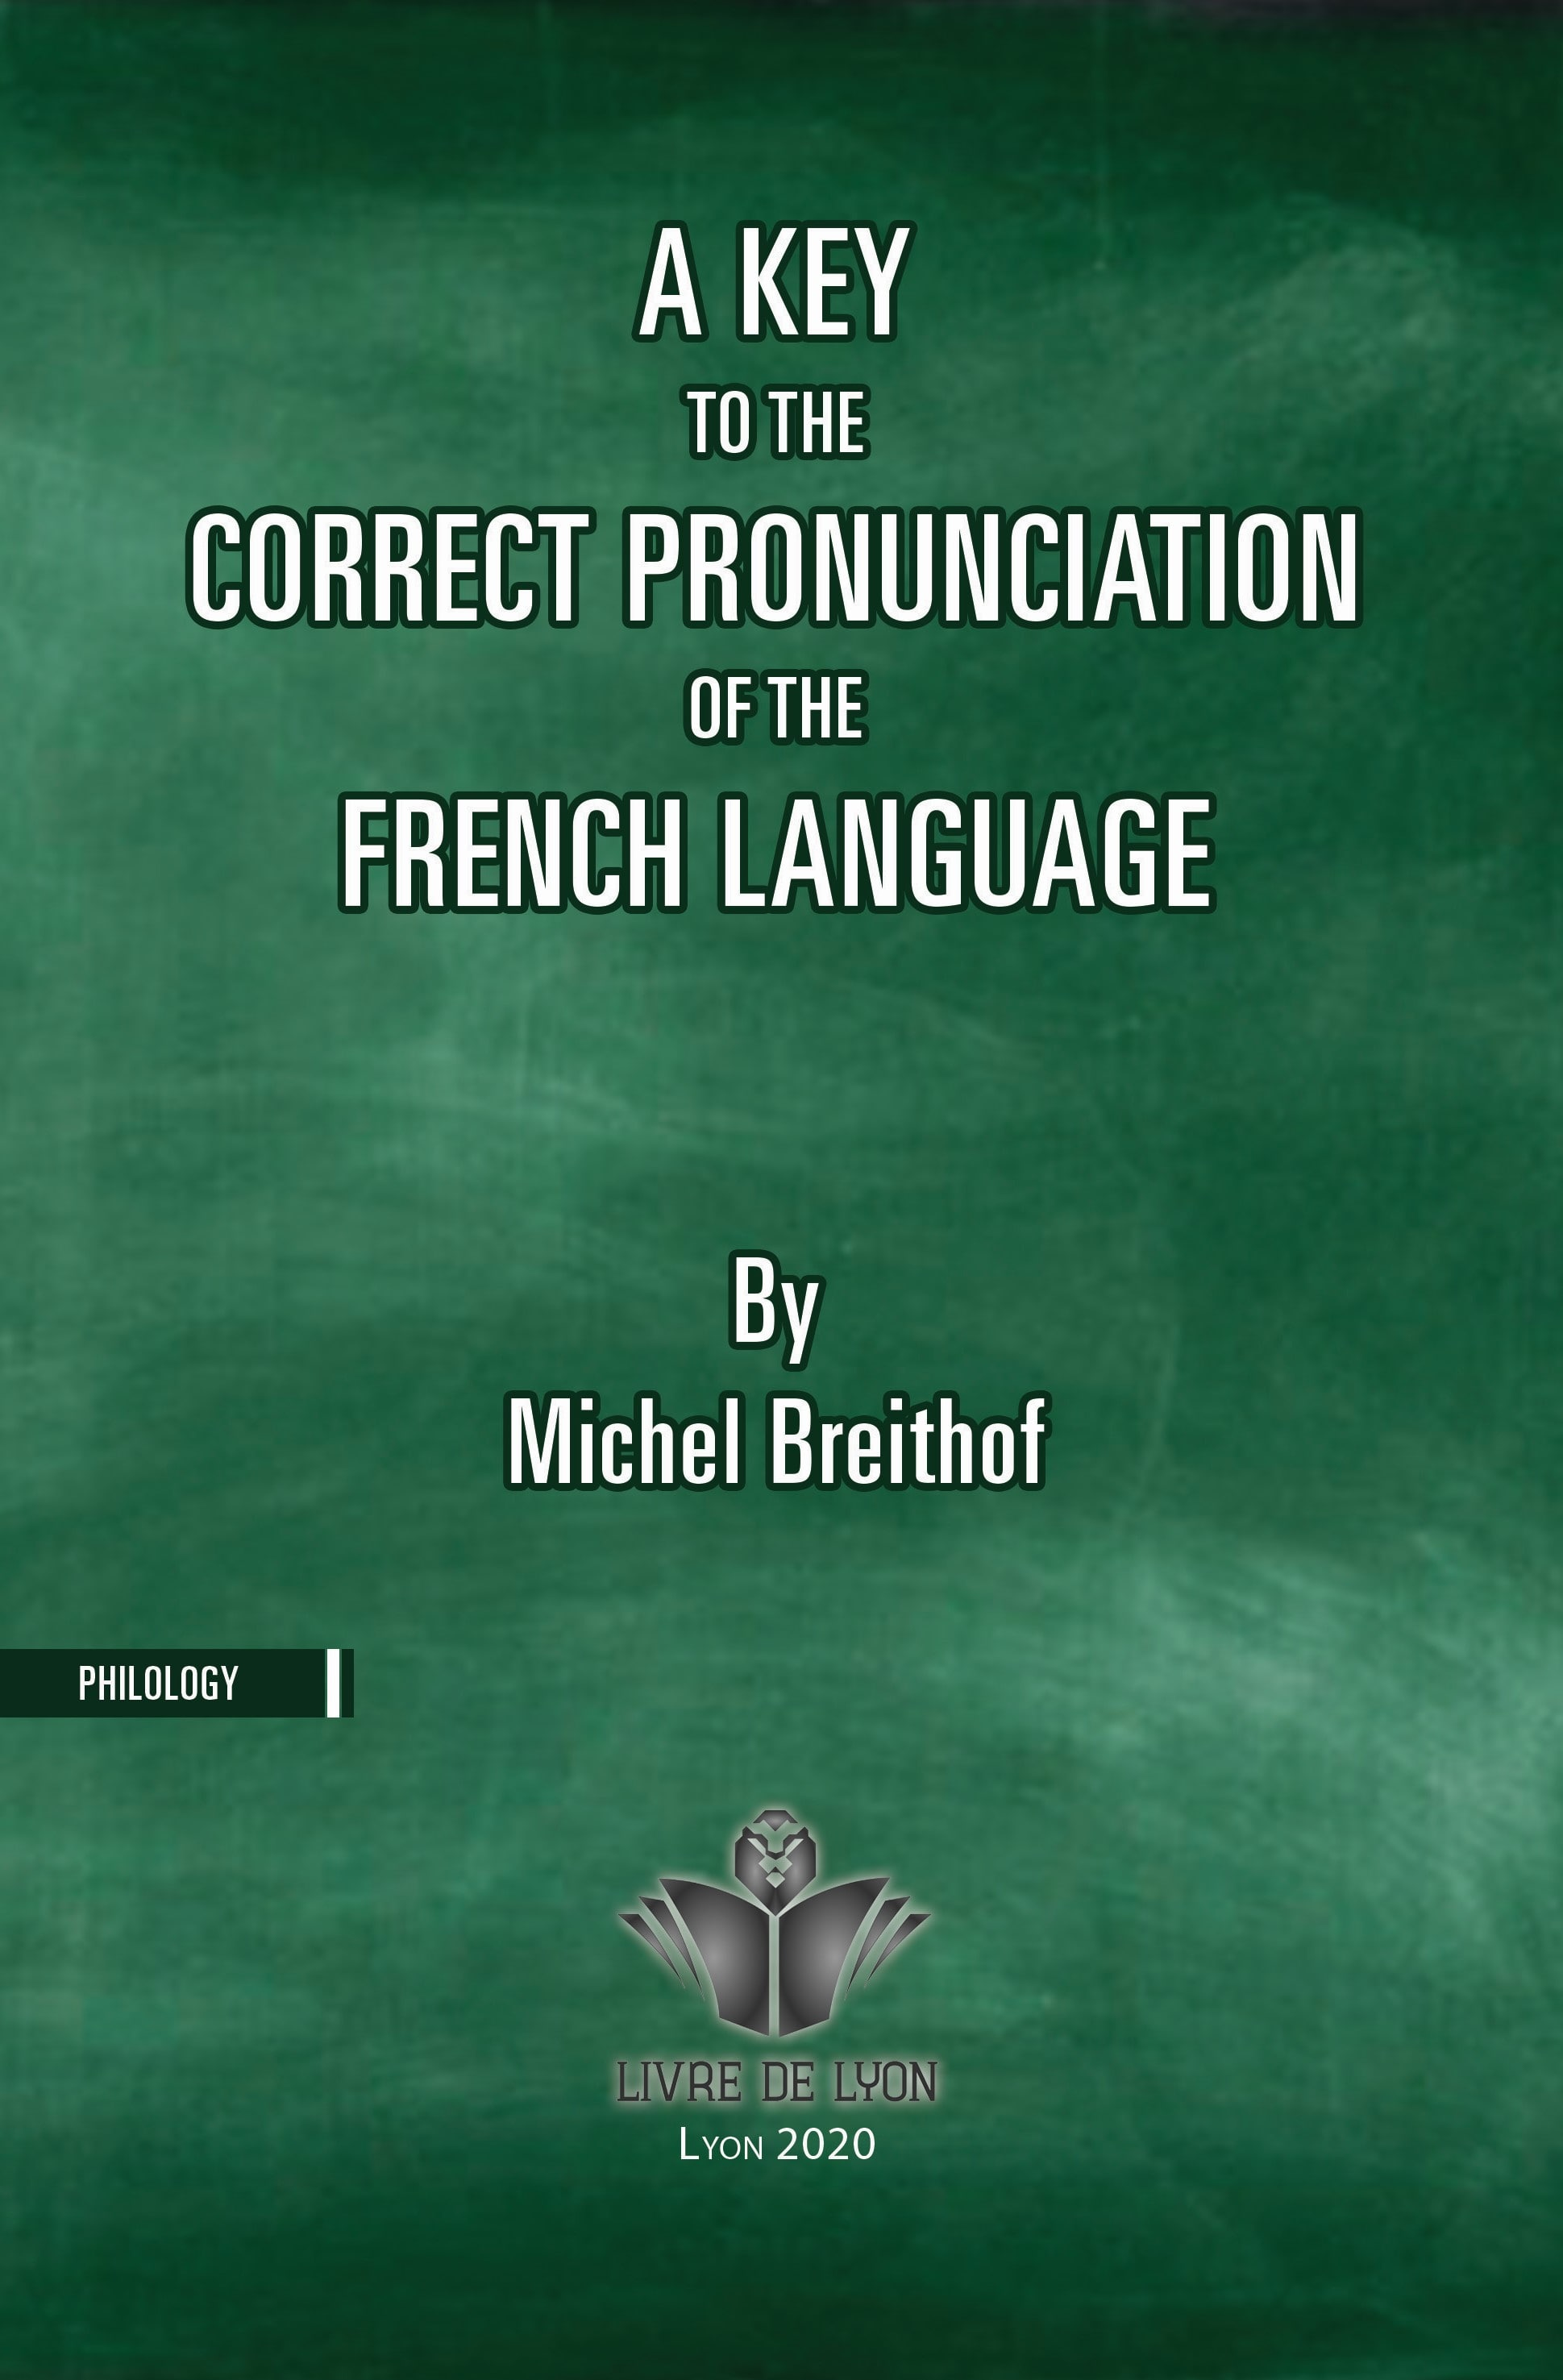 A Key to the Correct Pronunciation of the French Language